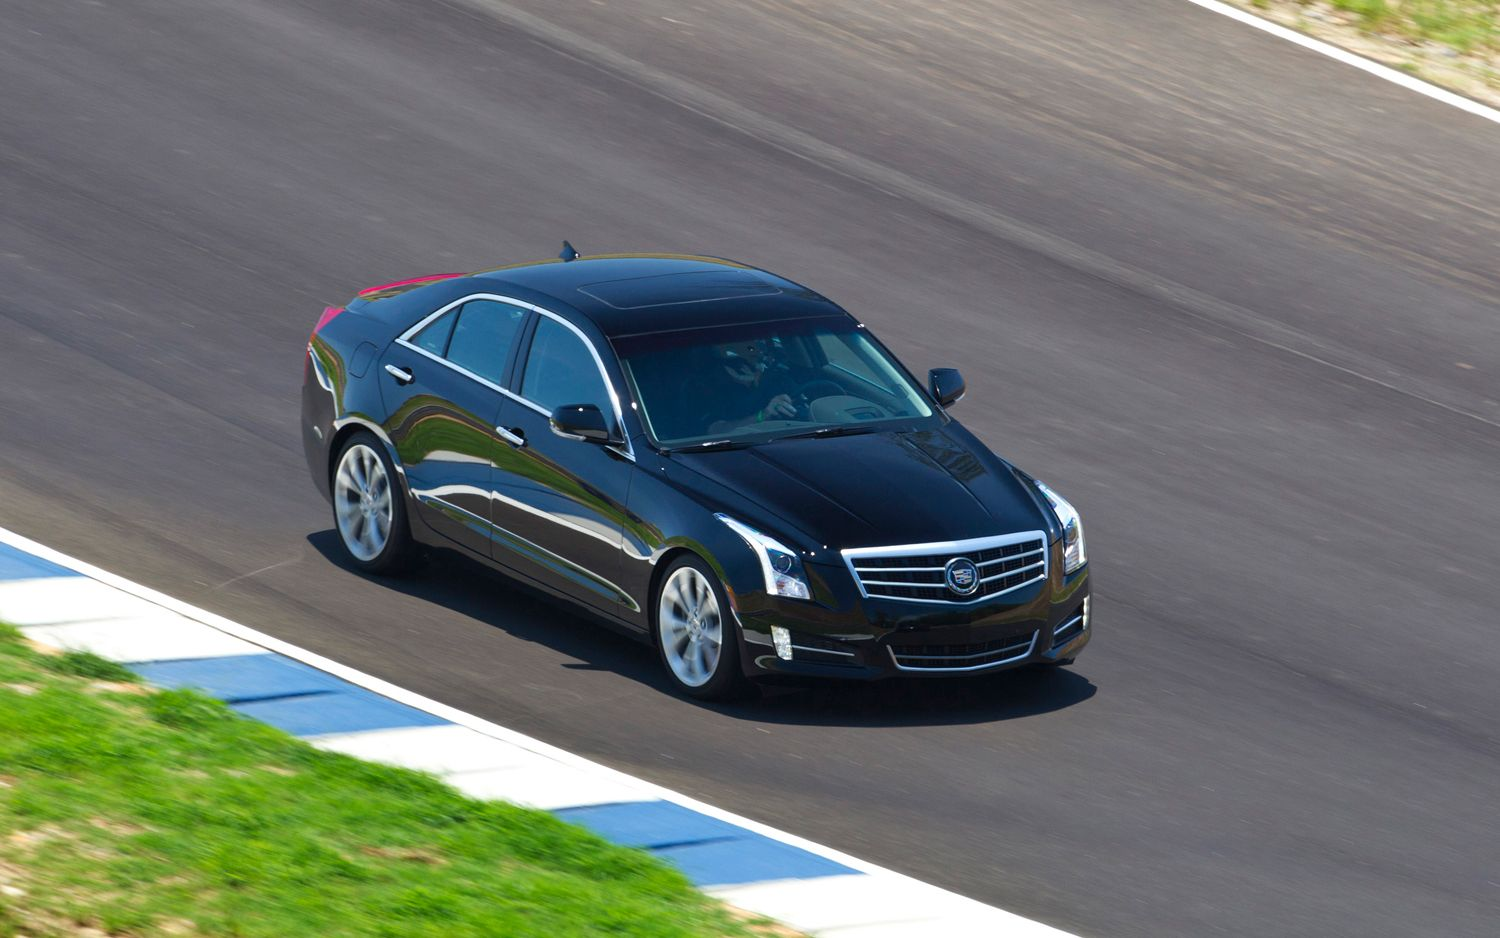 2013 Cadillac ATS Front Right Side View11